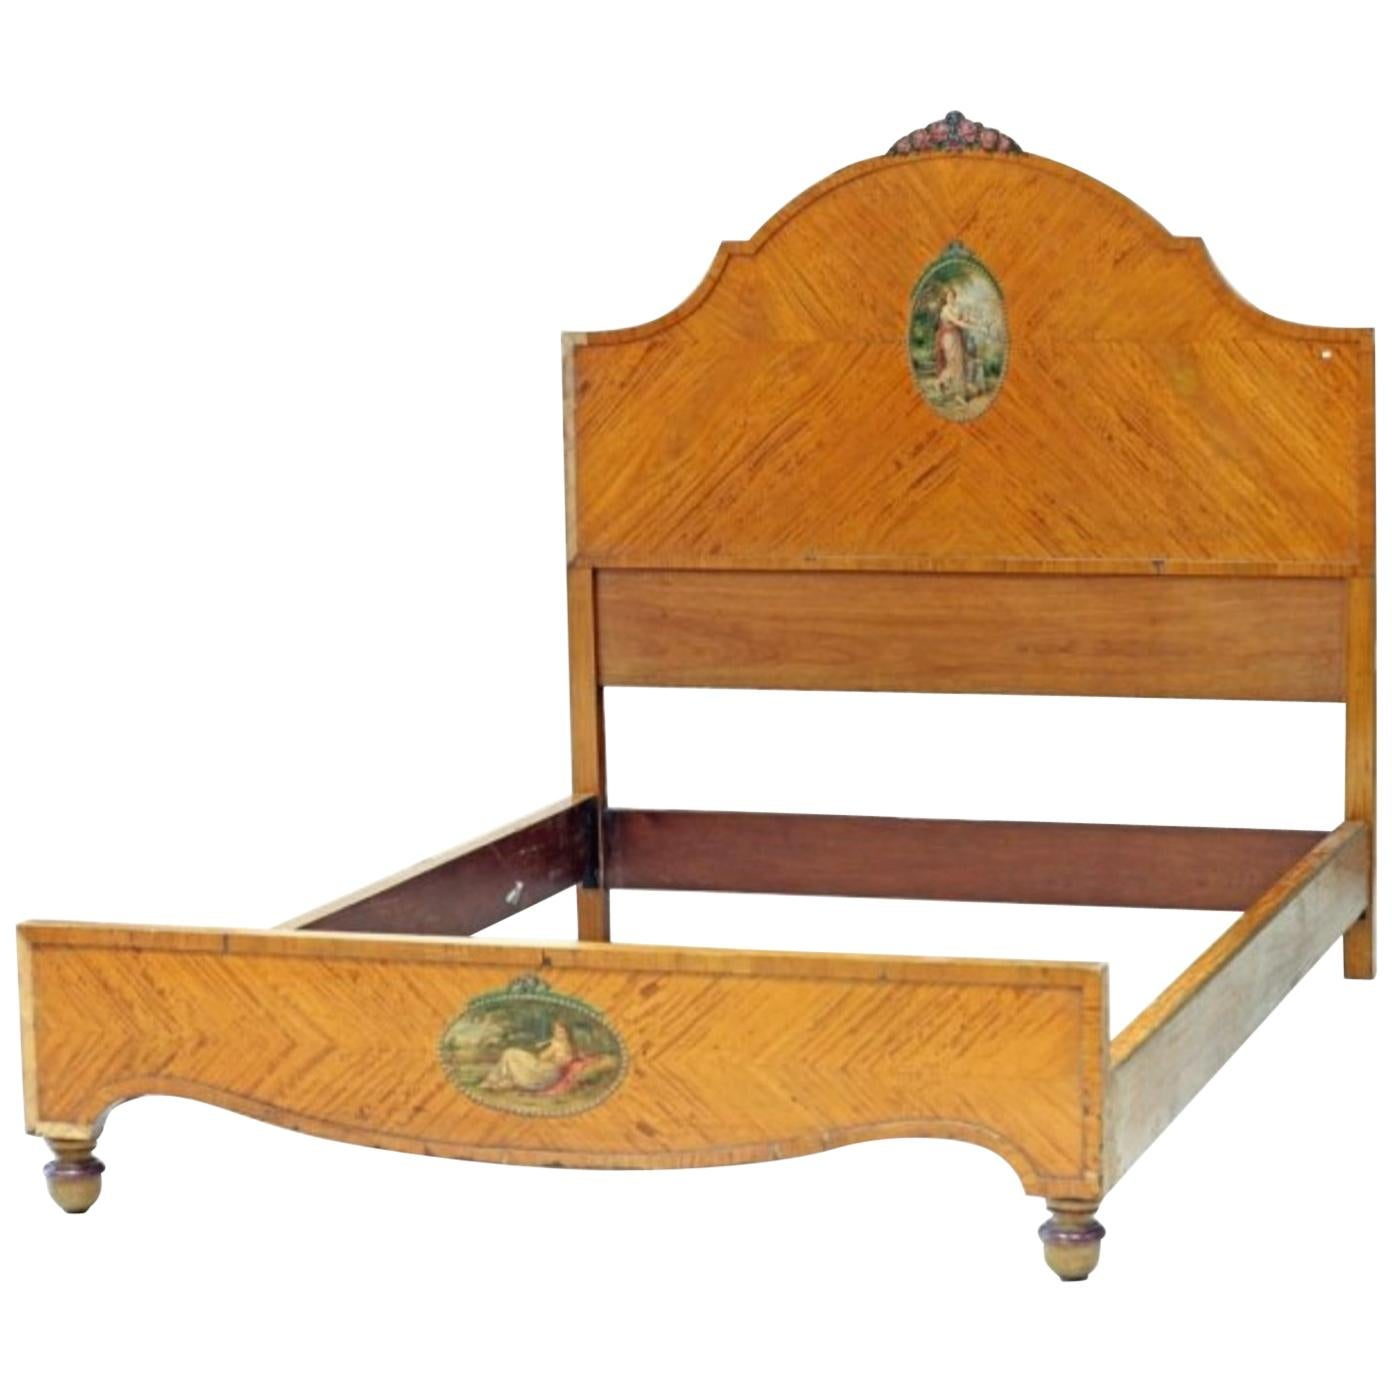 Edwardian Parcel Gilt Satinwood Bed Stand